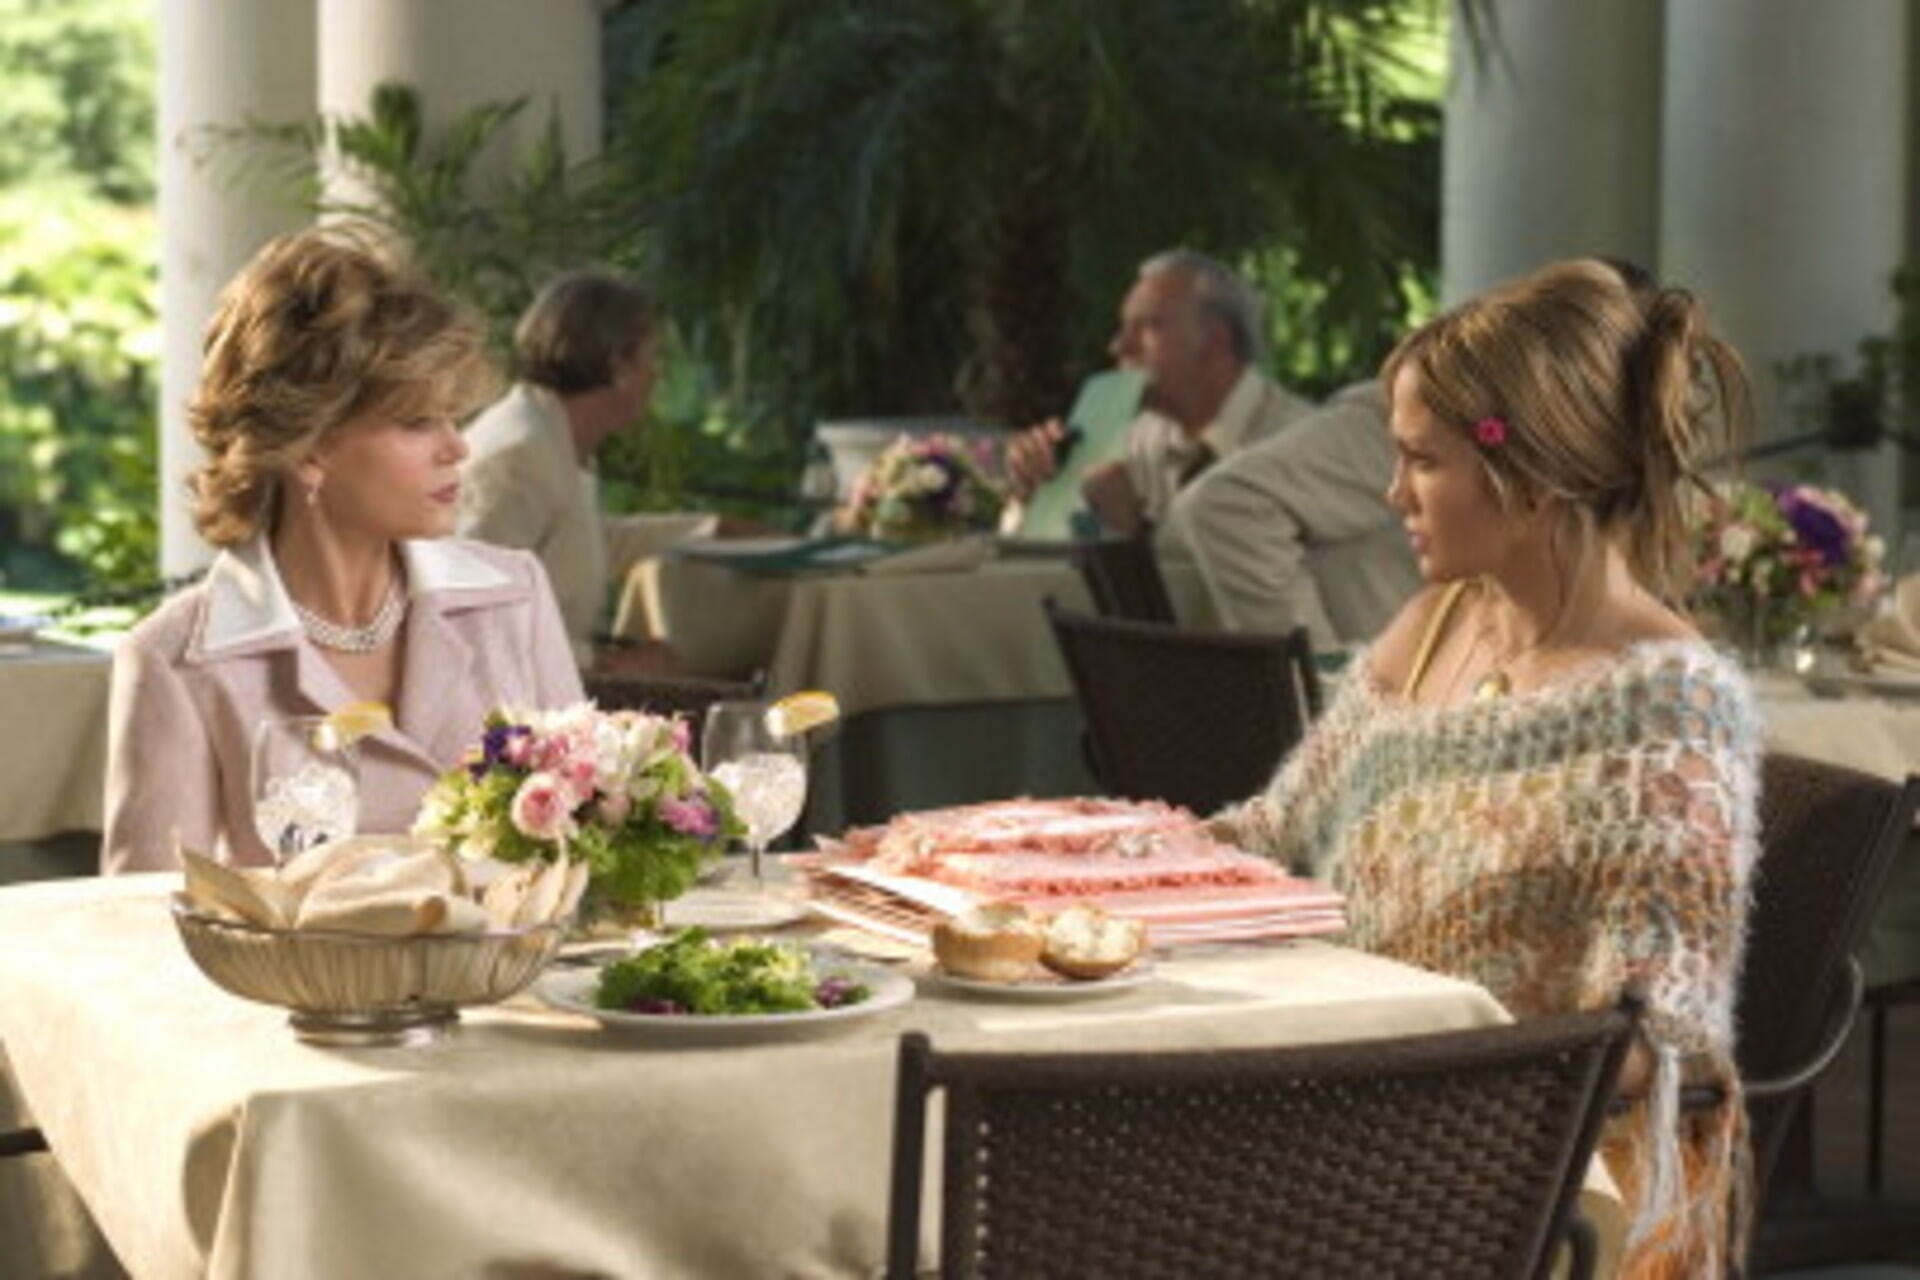 Monster-in-law - Image 31